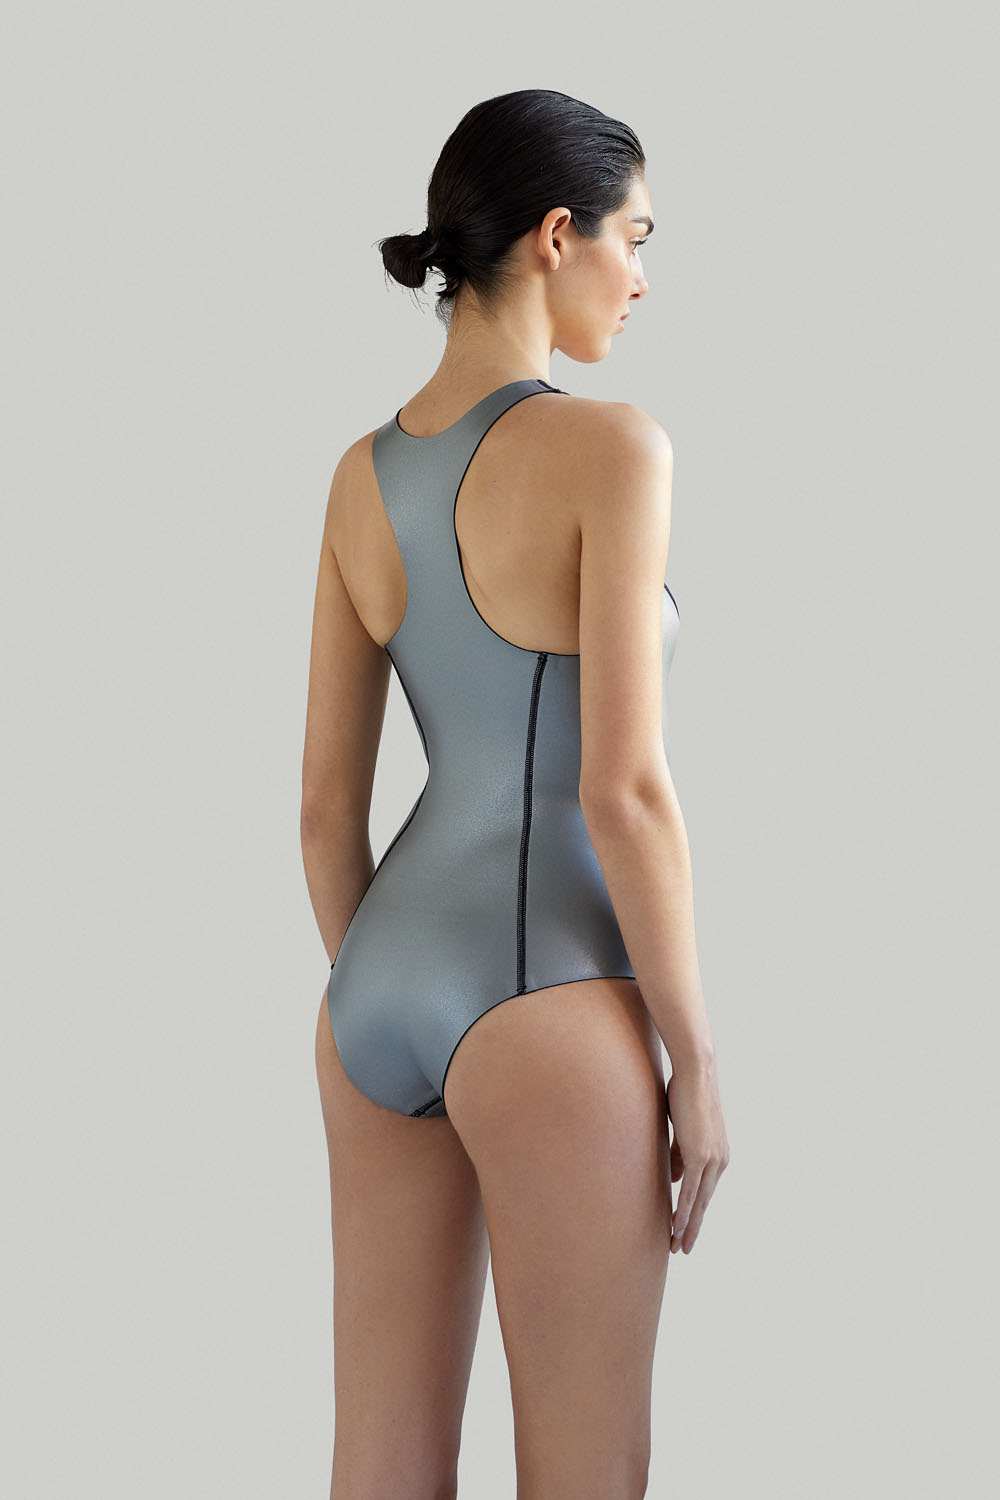 Sustainable Luxury Swimwear / Ropa de baño sostenible, neoprene wetsuit / bañador neopreno, surf ecoprene. Sylvia in silver by NOW_THEN,